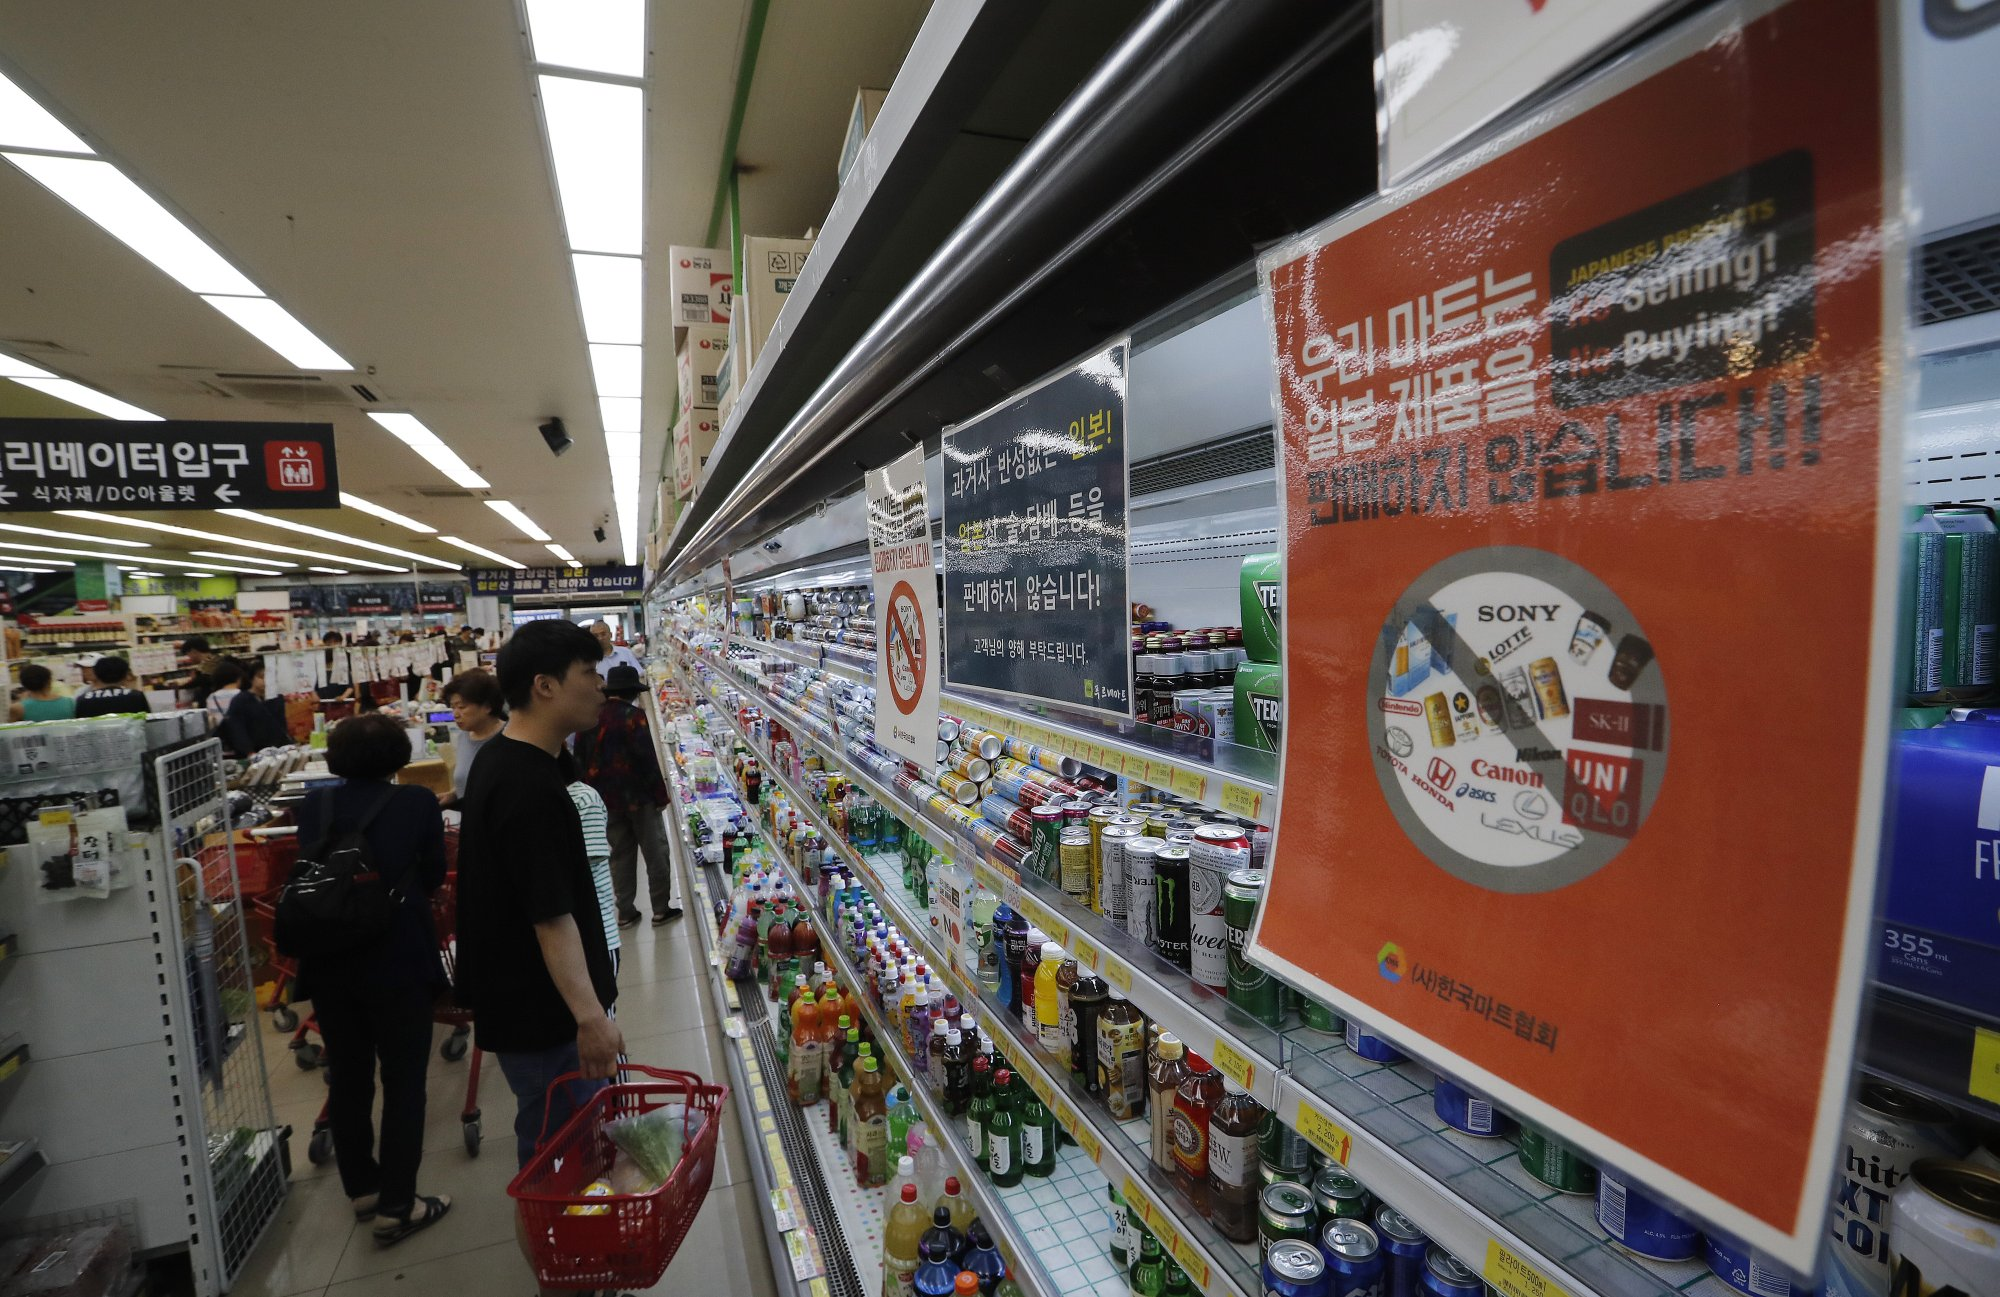 Japan says it won't discuss or retract SKorea export rules